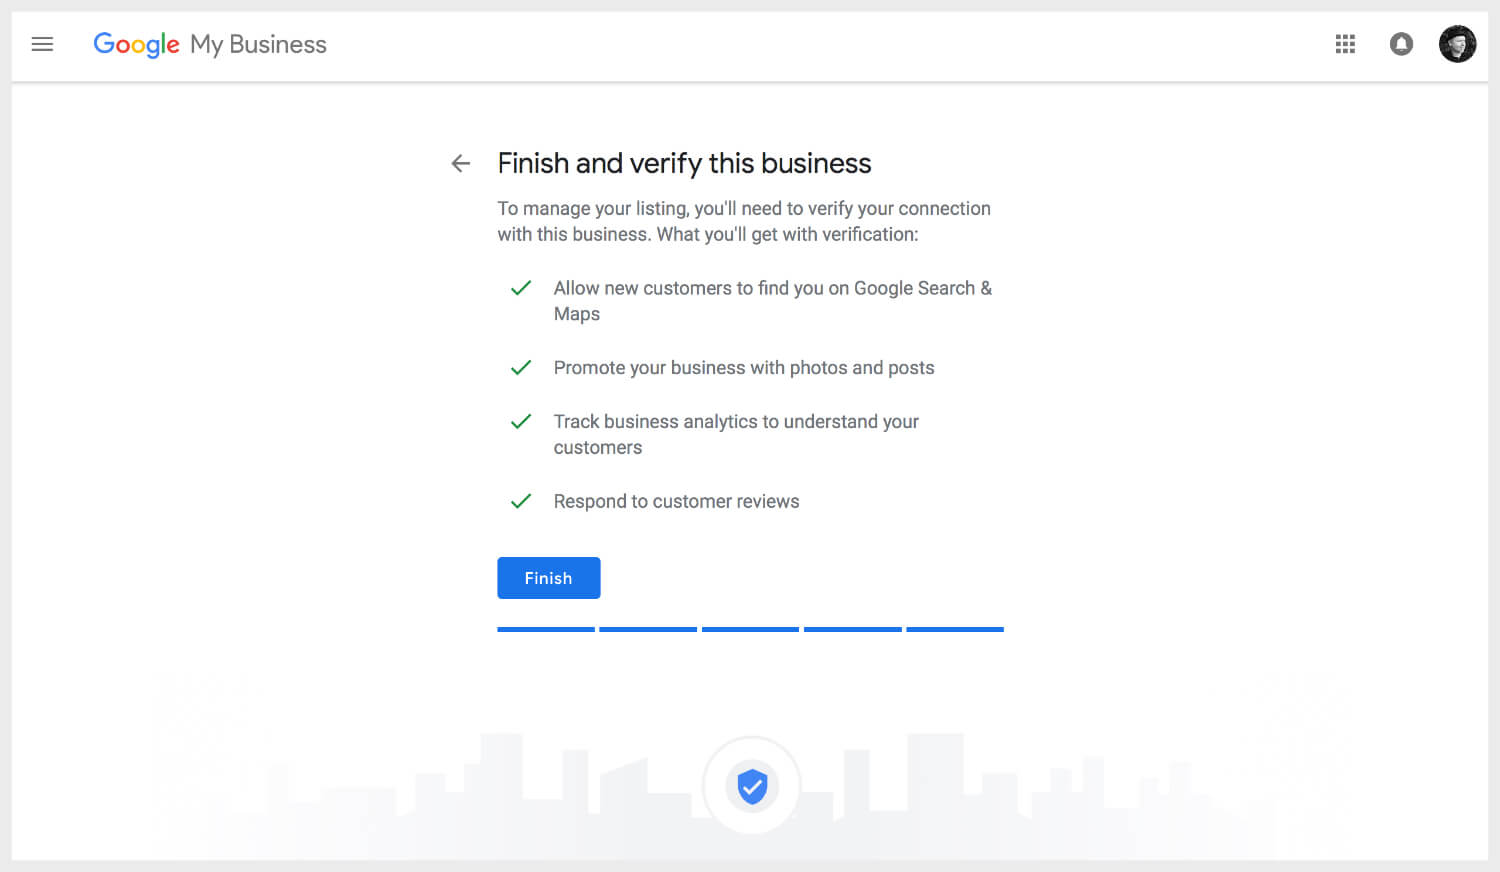 Finishing and verifying business listing on Google My Business